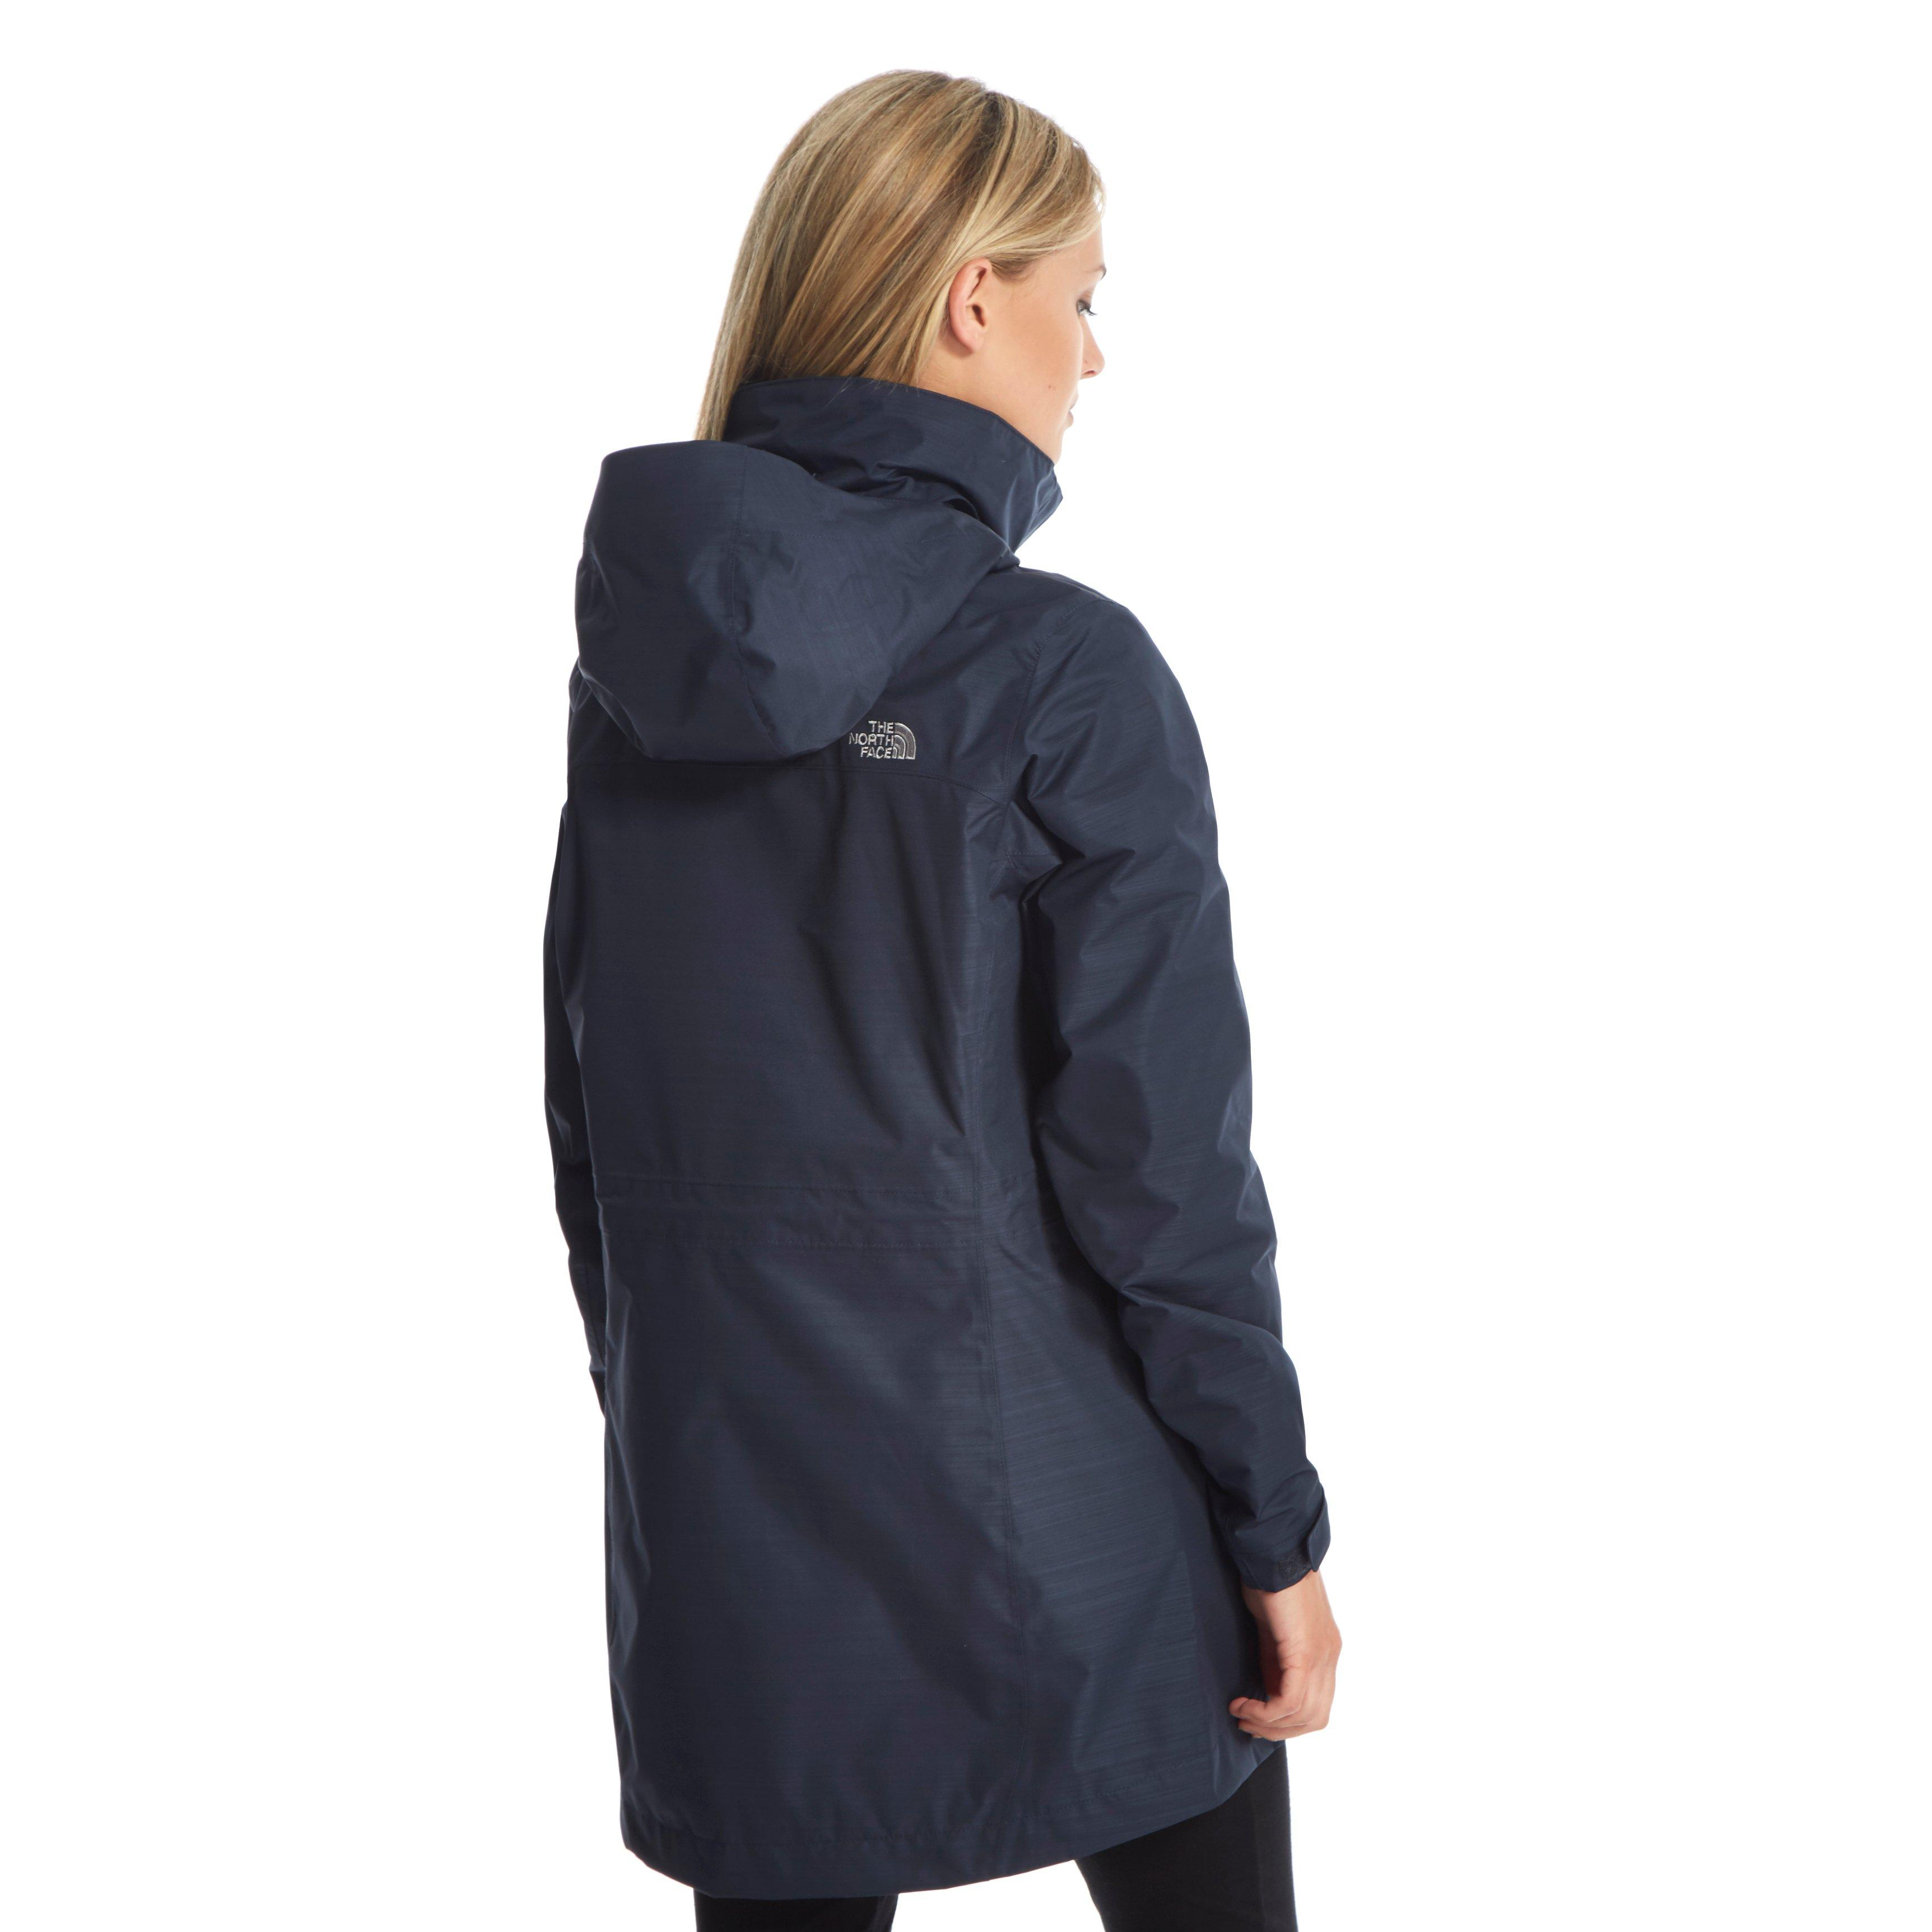 THE NORTH FACE Womenu0027s Cirrus Parka  sc 1 st  Blacks & THE NORTH FACE Womenu0027s Cirrus Parka | Blacks